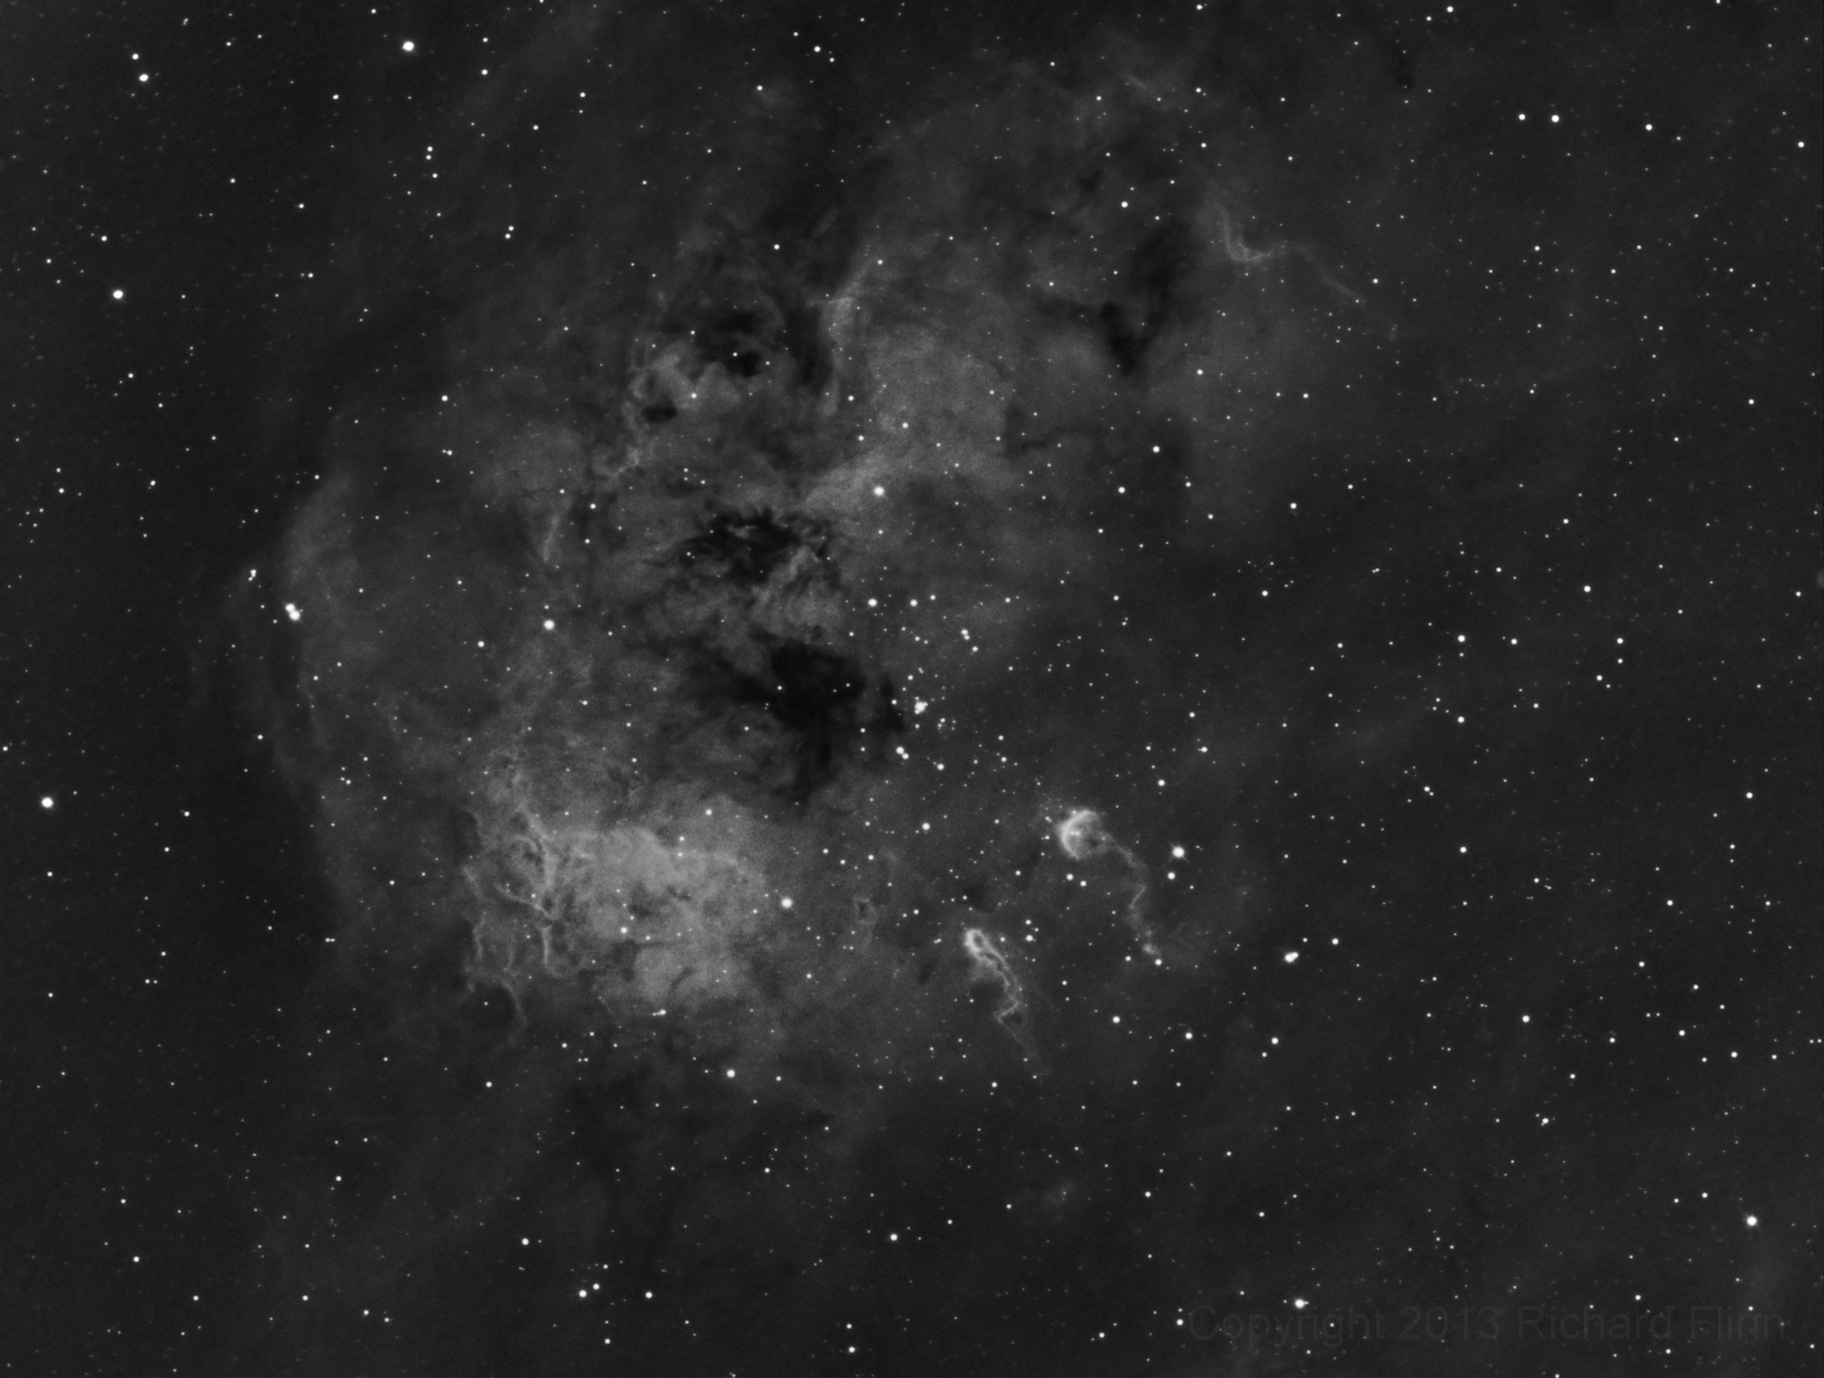 The Tadpoles of IC 410 Nebula. Also includes: NGC 1893 - open cluster in the constellation Auriga.